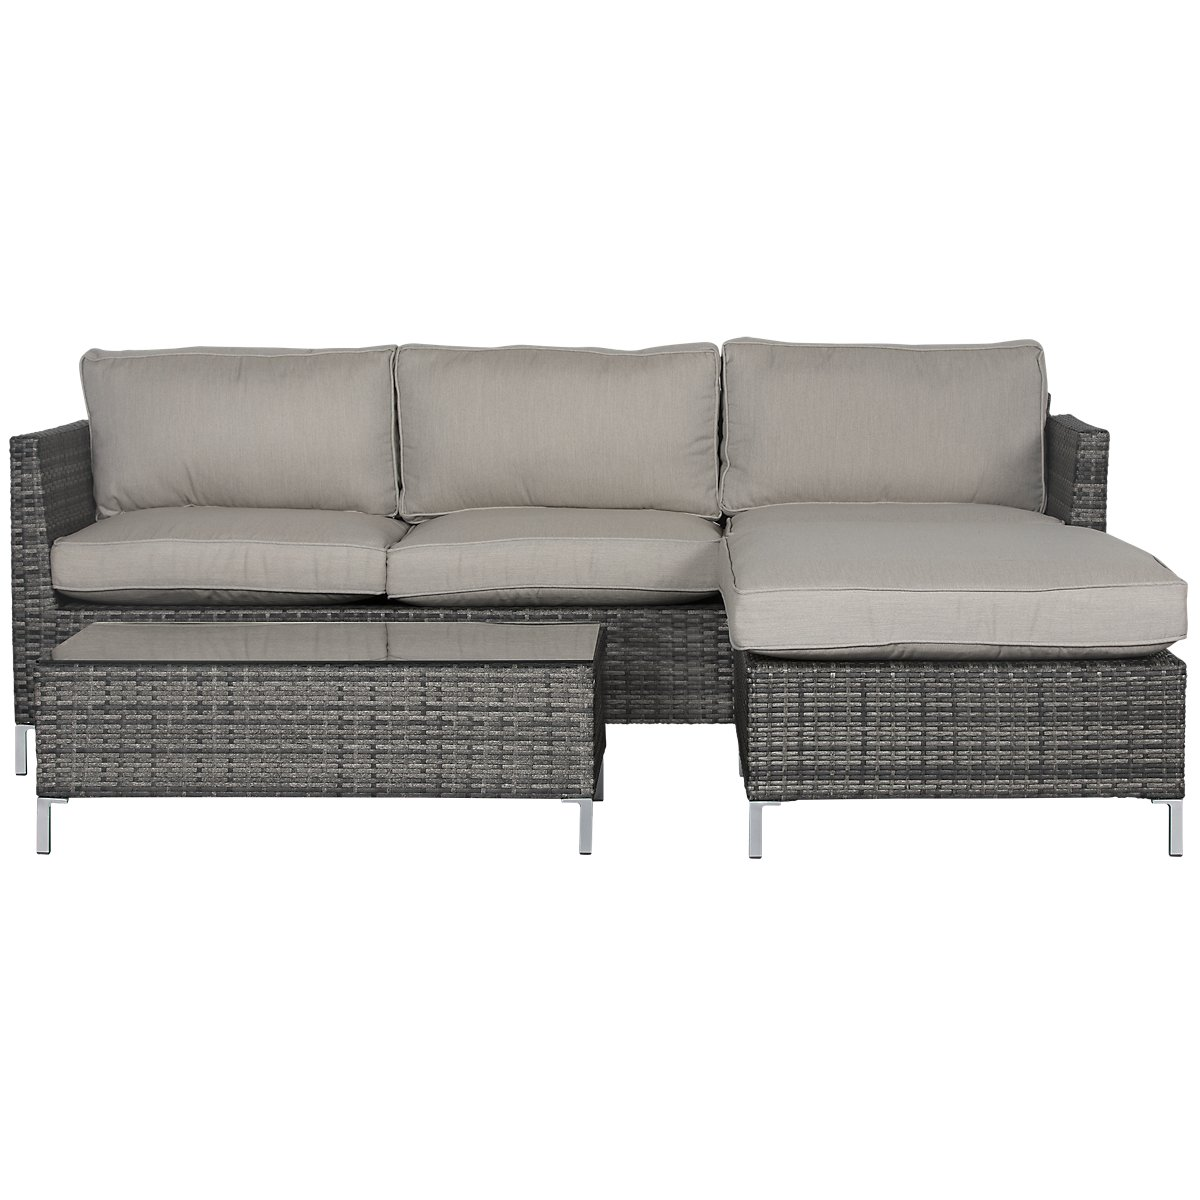 City Furniture: Monterey Gray Outdoor Living Room Set on Outdoor Living Set id=33109